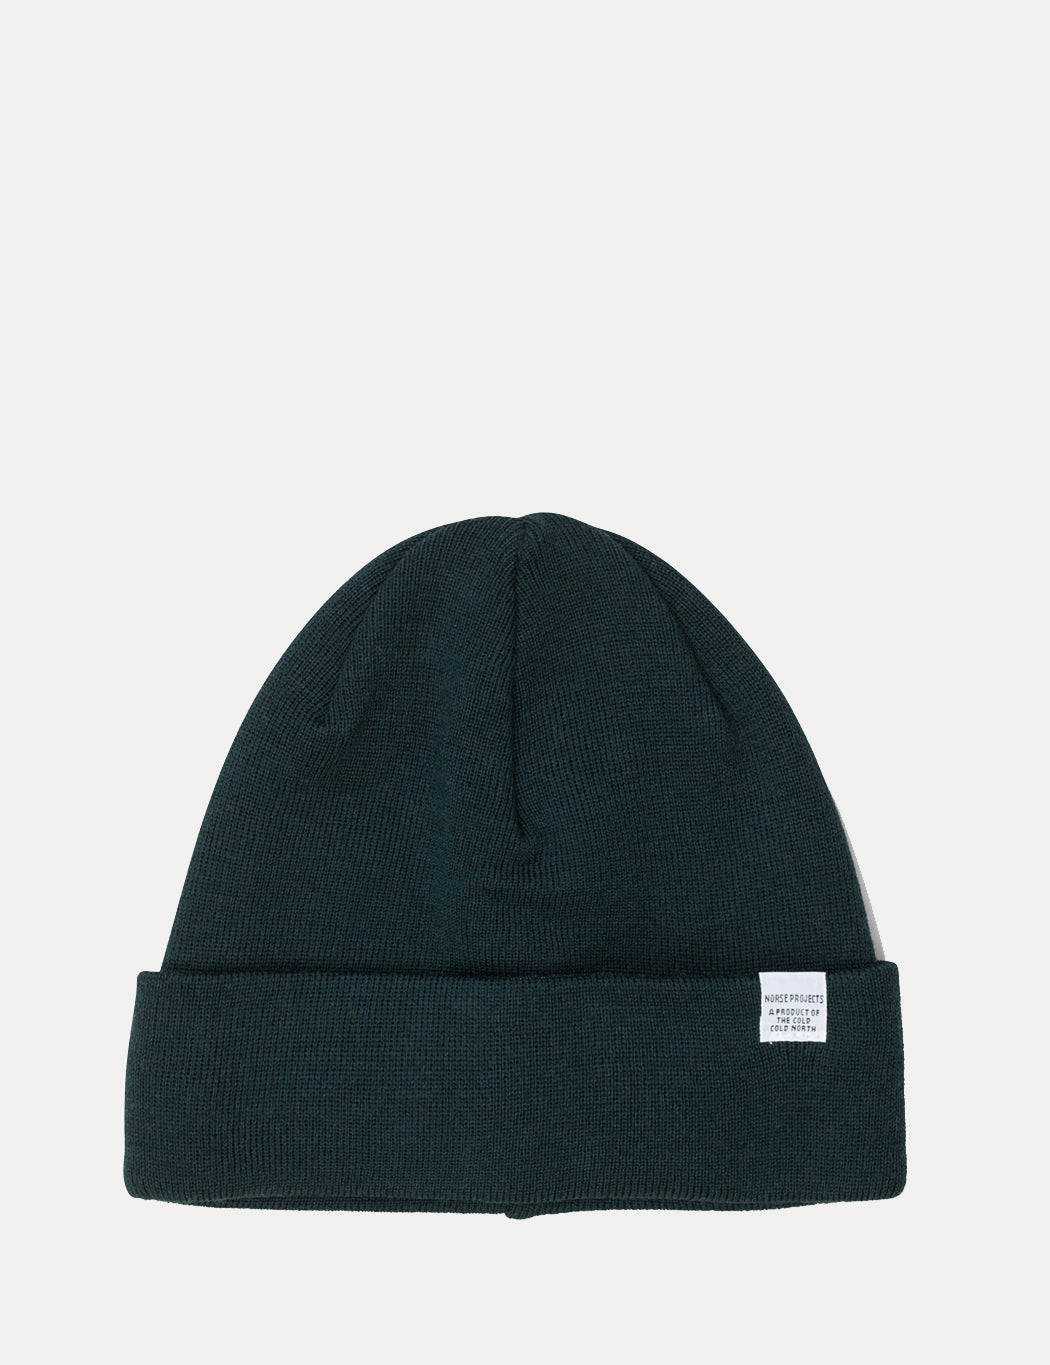 018bab03be063 Norse Projects Top Beanie Hat - Quartz Green